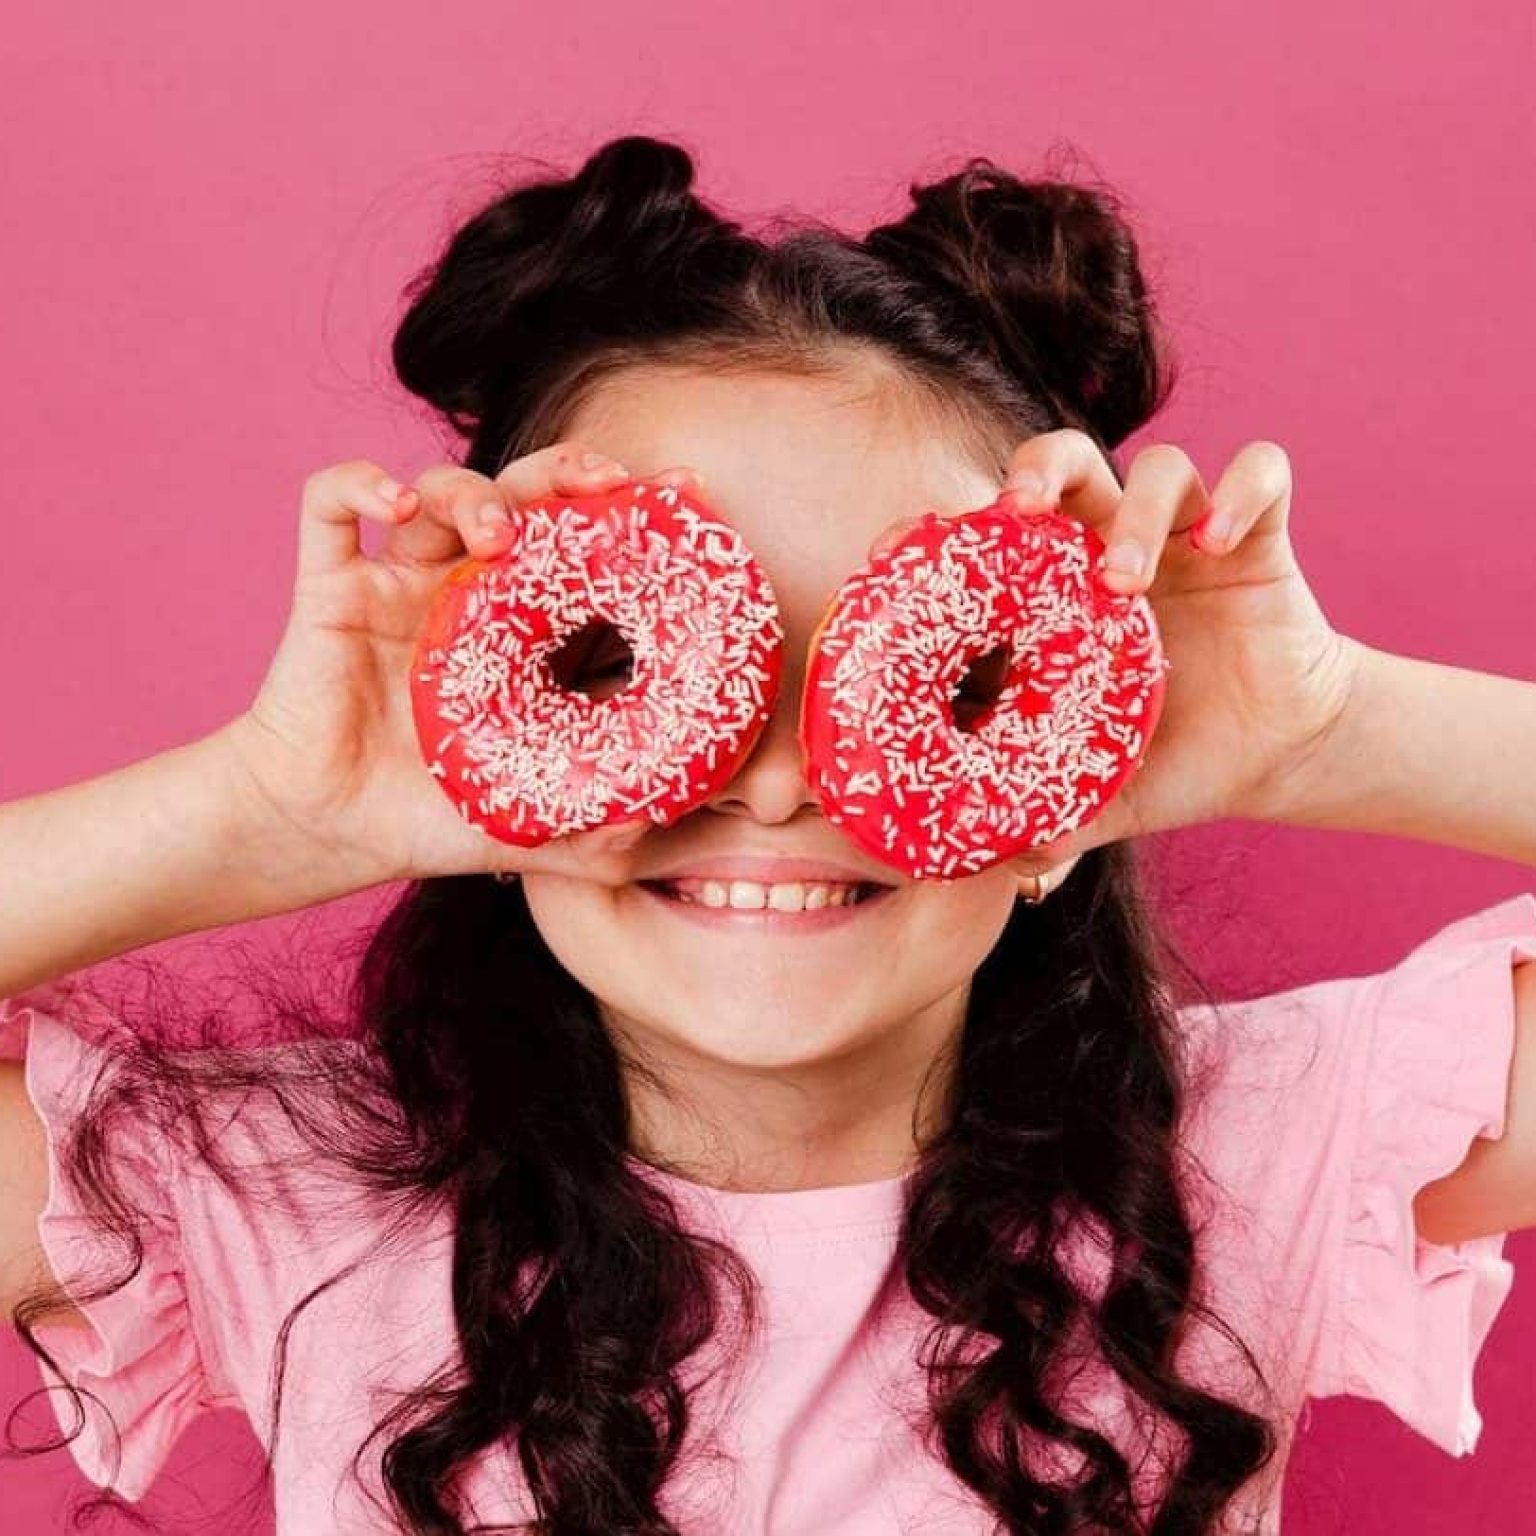 Child holding pink donuts over eyes, showing healthy party food